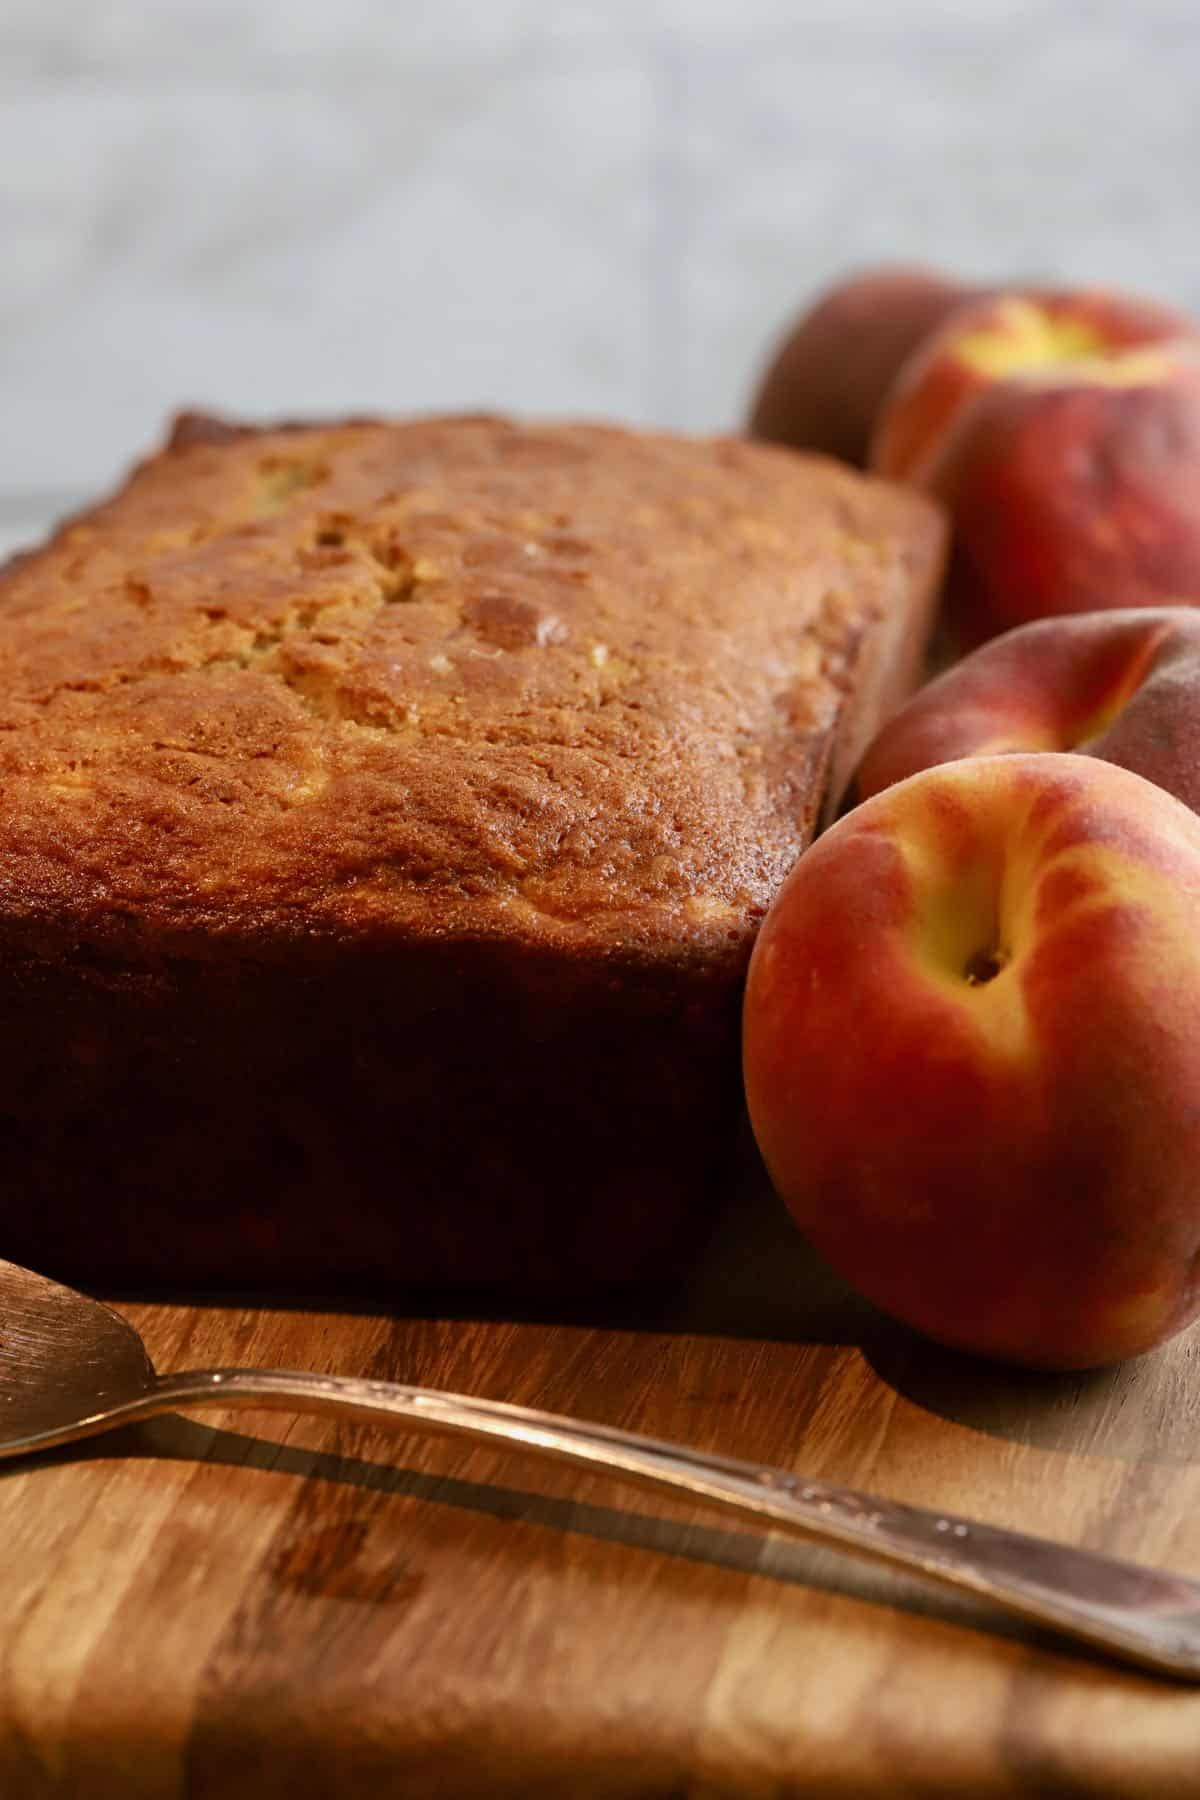 A loaf of peach bread on a wooden cutting board.